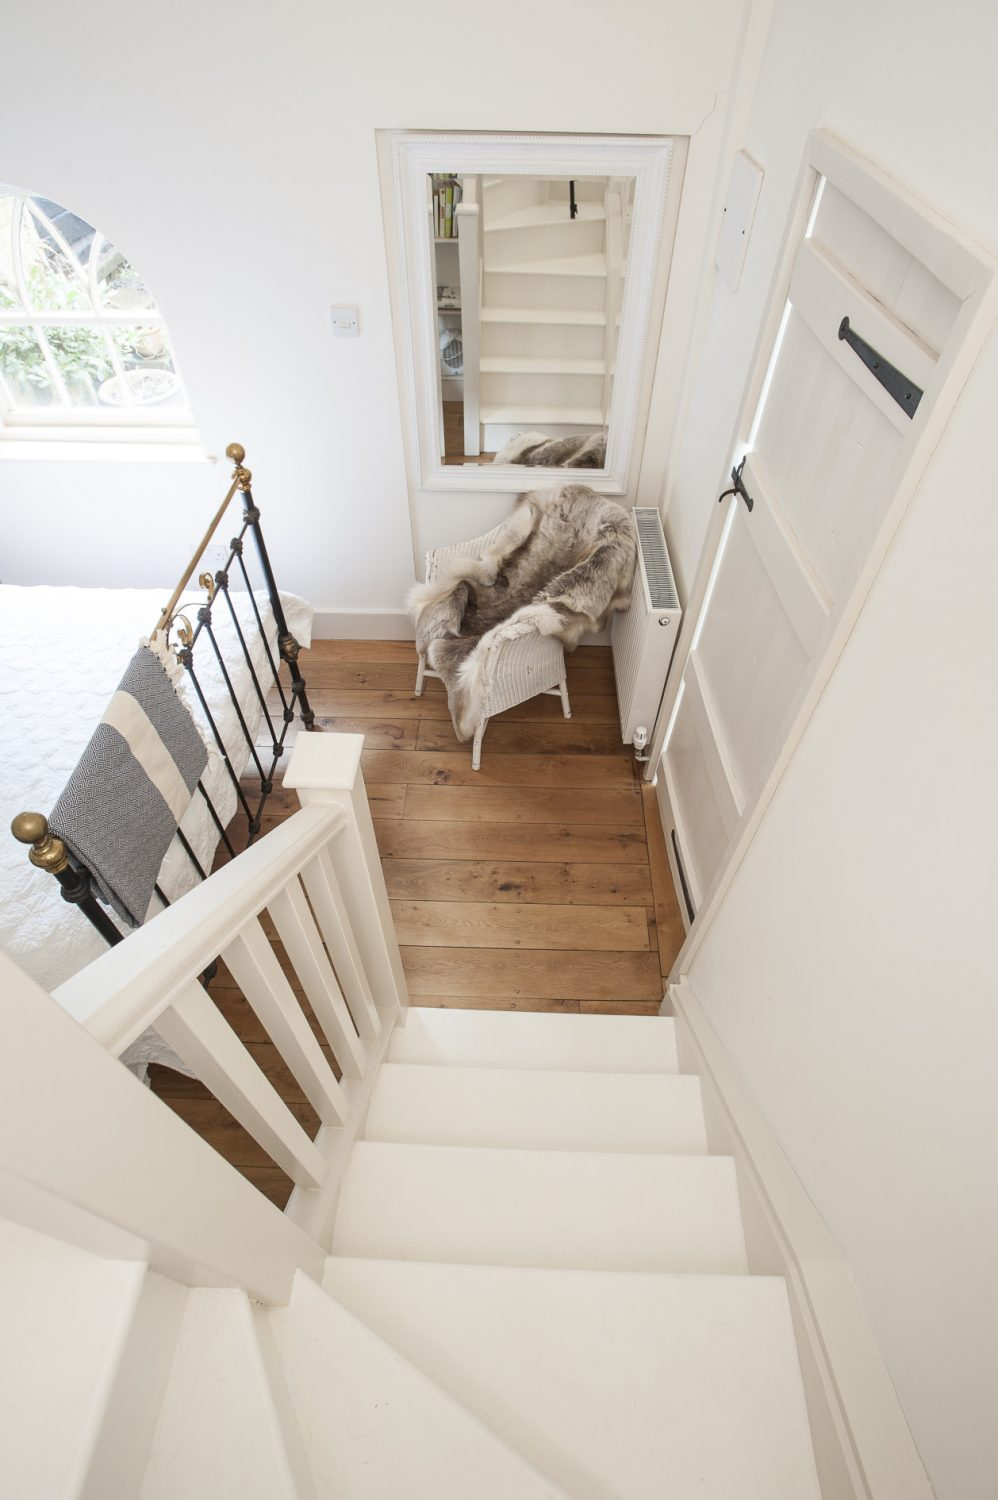 Up the stairs, off a little white galleried landing, is a wonderful en suite bathroom with roll-top bath